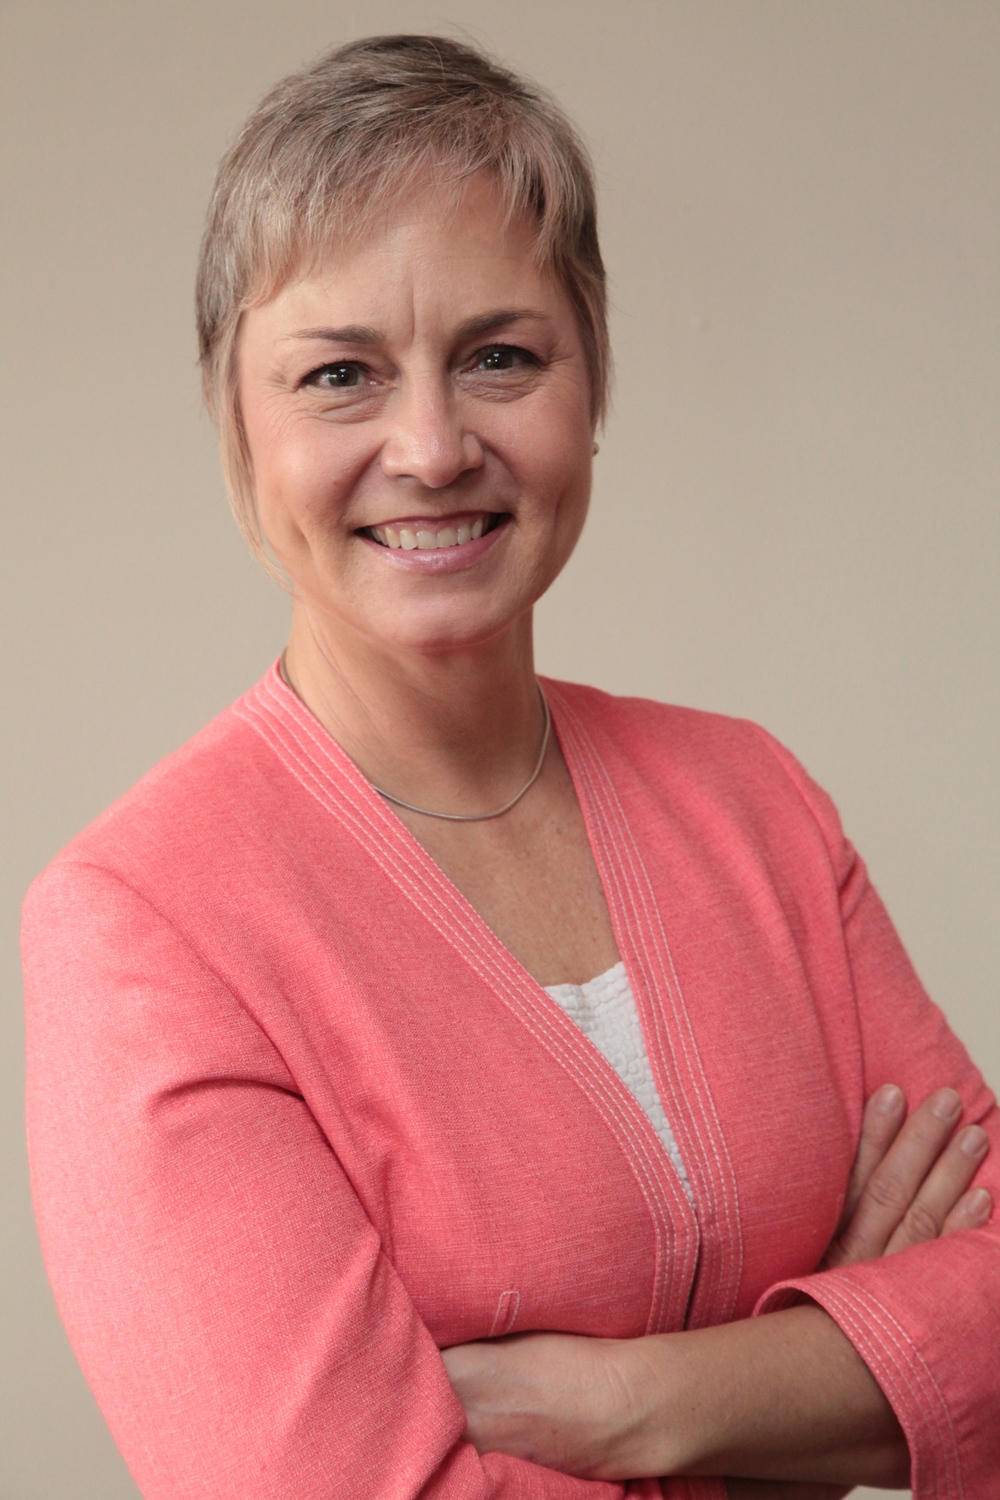 Lynn Ellwood, M.H.Sc.,Speech-Language Pathologist, is an Associate Professor, Teaching Stream,at the University of Toronto. Her Toronto-based private practice focuses on neuro-rehabilitation and accent modification.